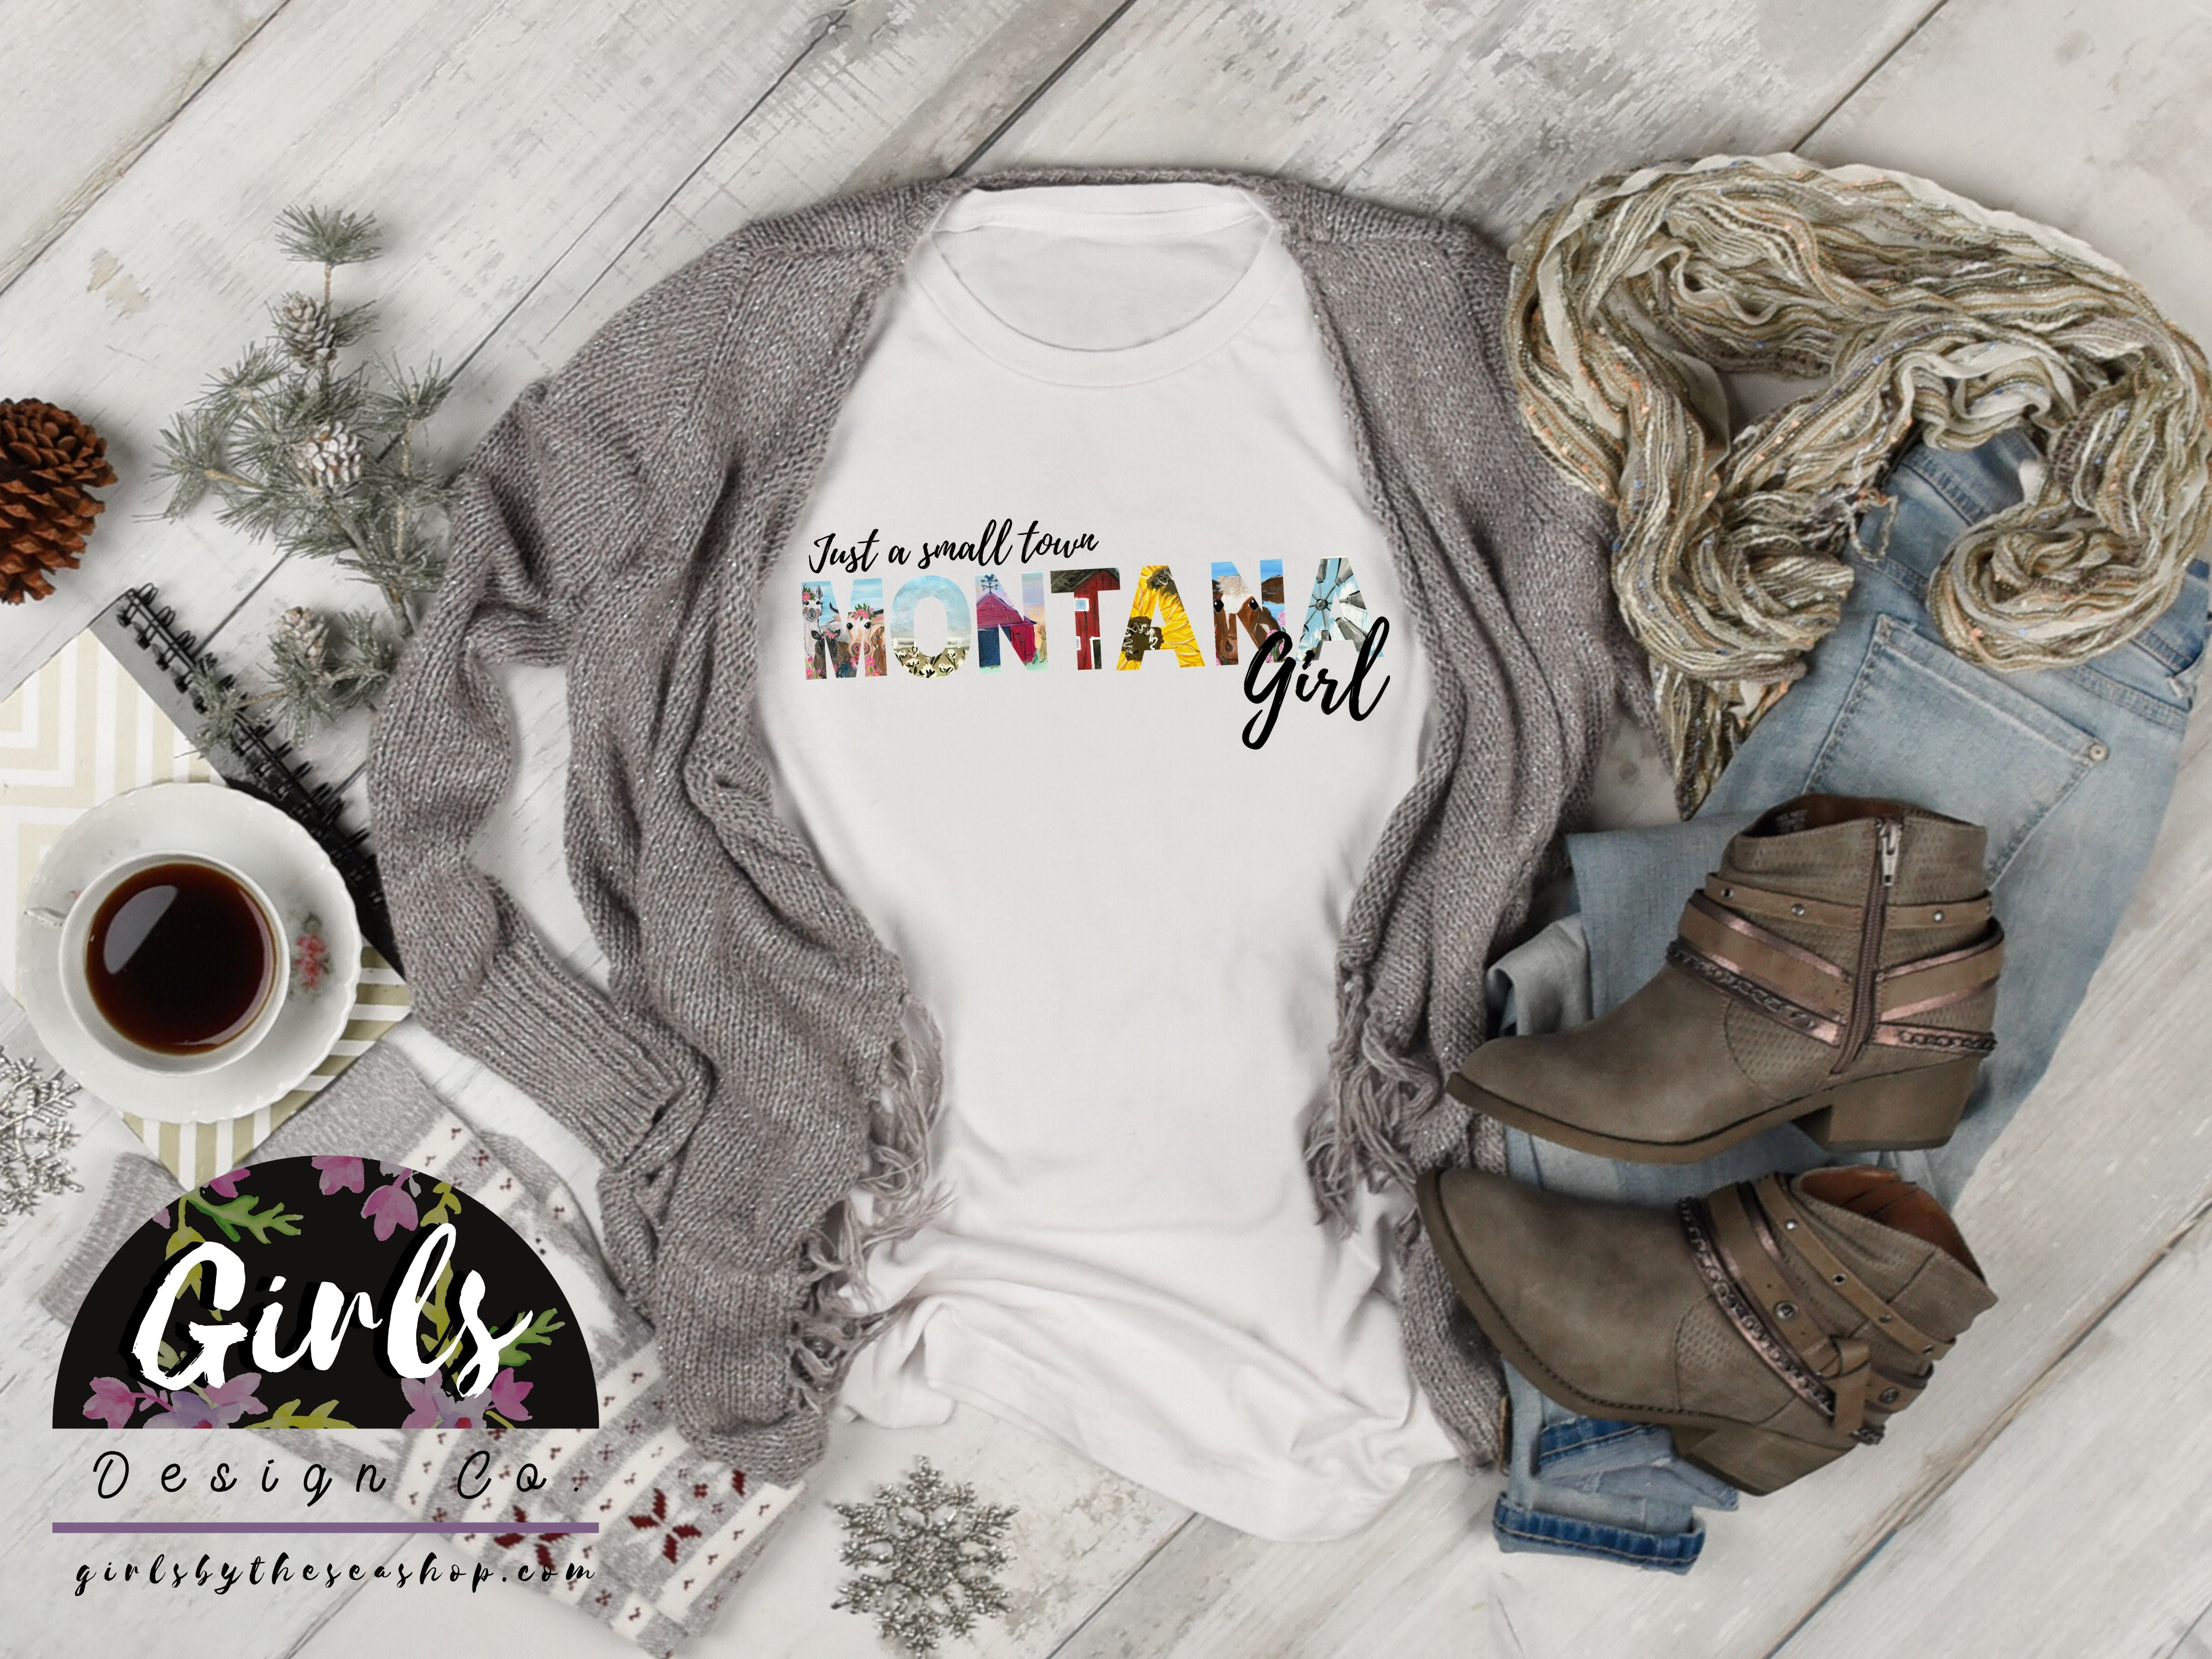 MONTANA Small Town Girl T-Shirt - Adults / Youth / Baby-Gift, MONTANA, retailshirts, State-Shop-Wholesale-Womens-Boutique-Custom-Graphic-Tees-Branding-Gifts